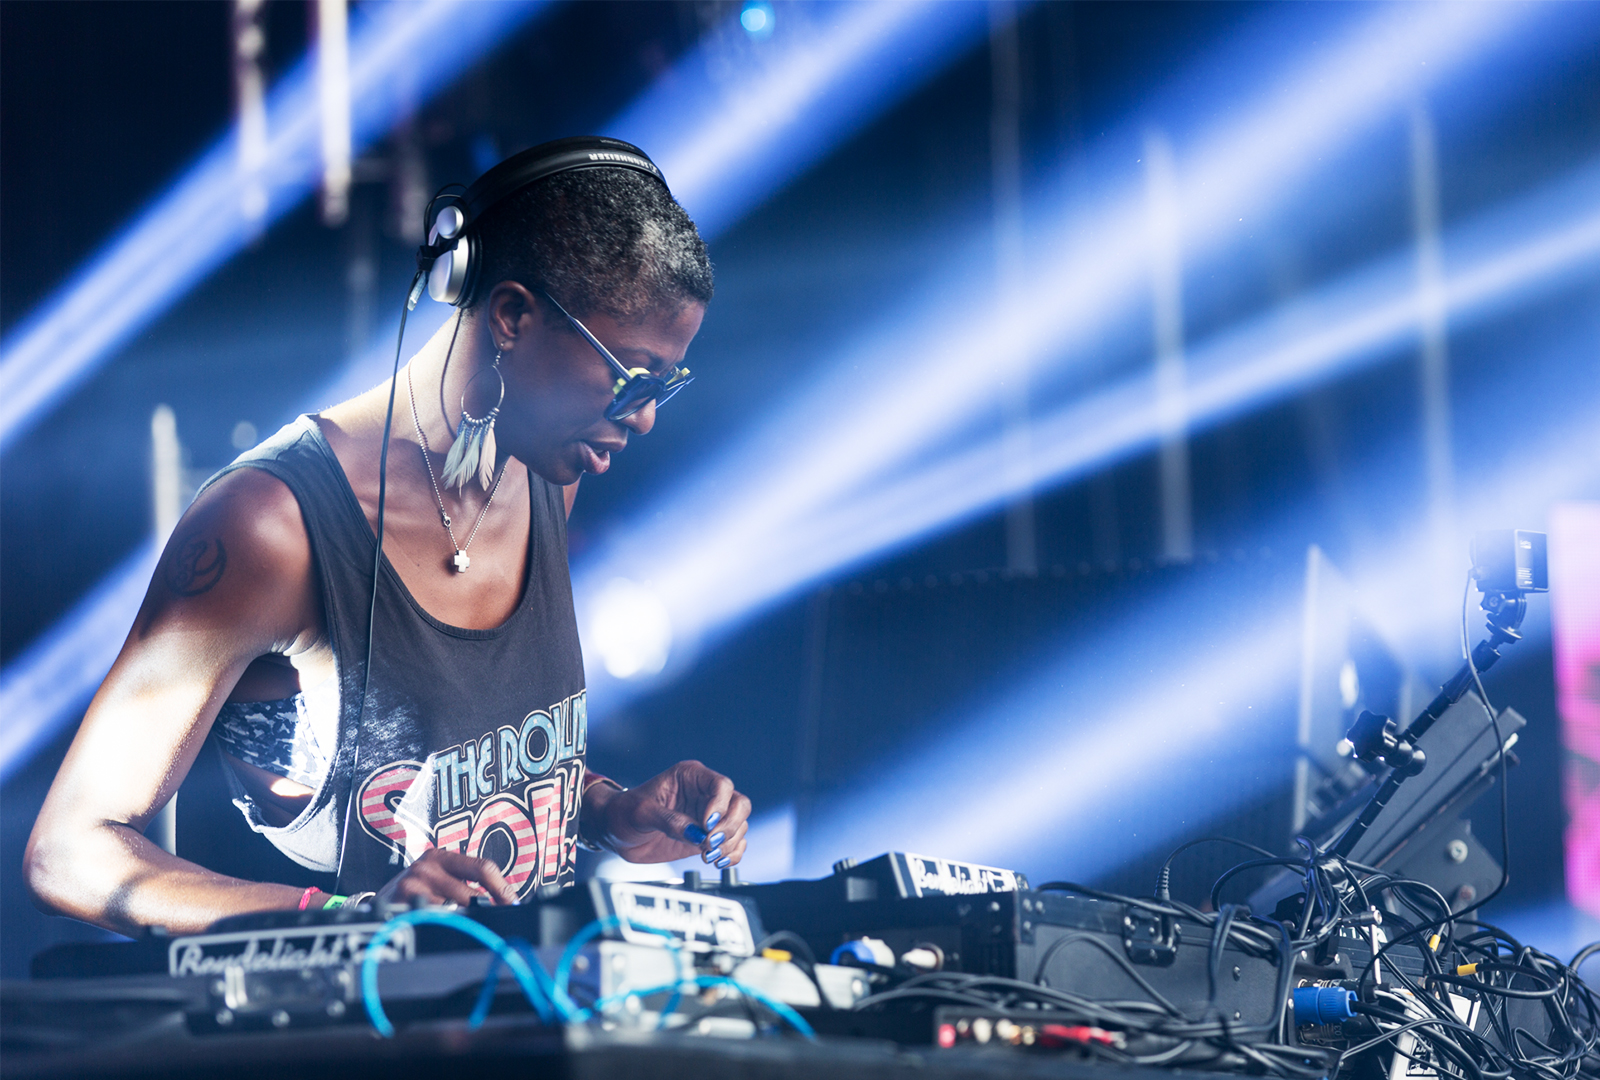 Women of house music celebrated in new book, Lady of the House